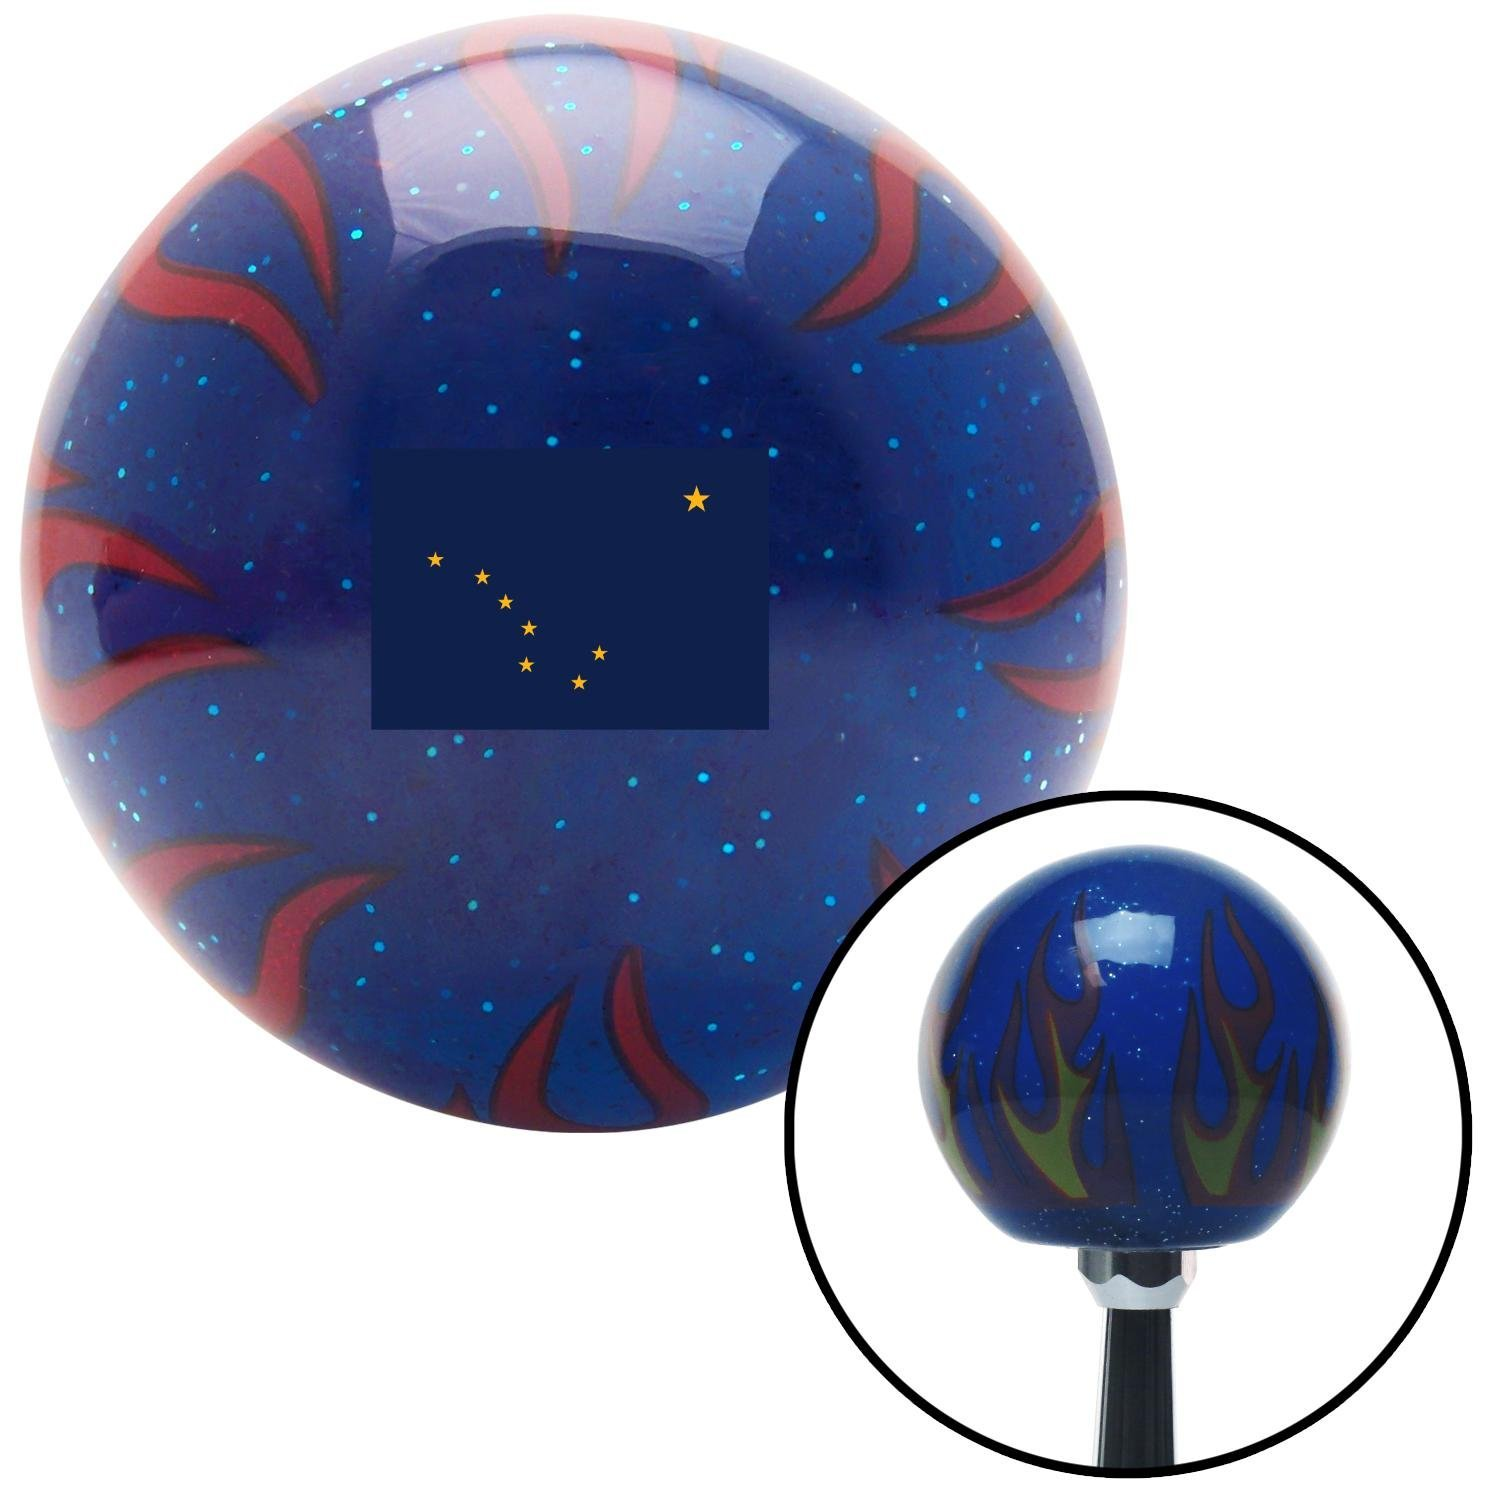 American Shifter 310327 Shift Knob Alaska Blue Flame Metal Flake with M16 x 1.5 Insert